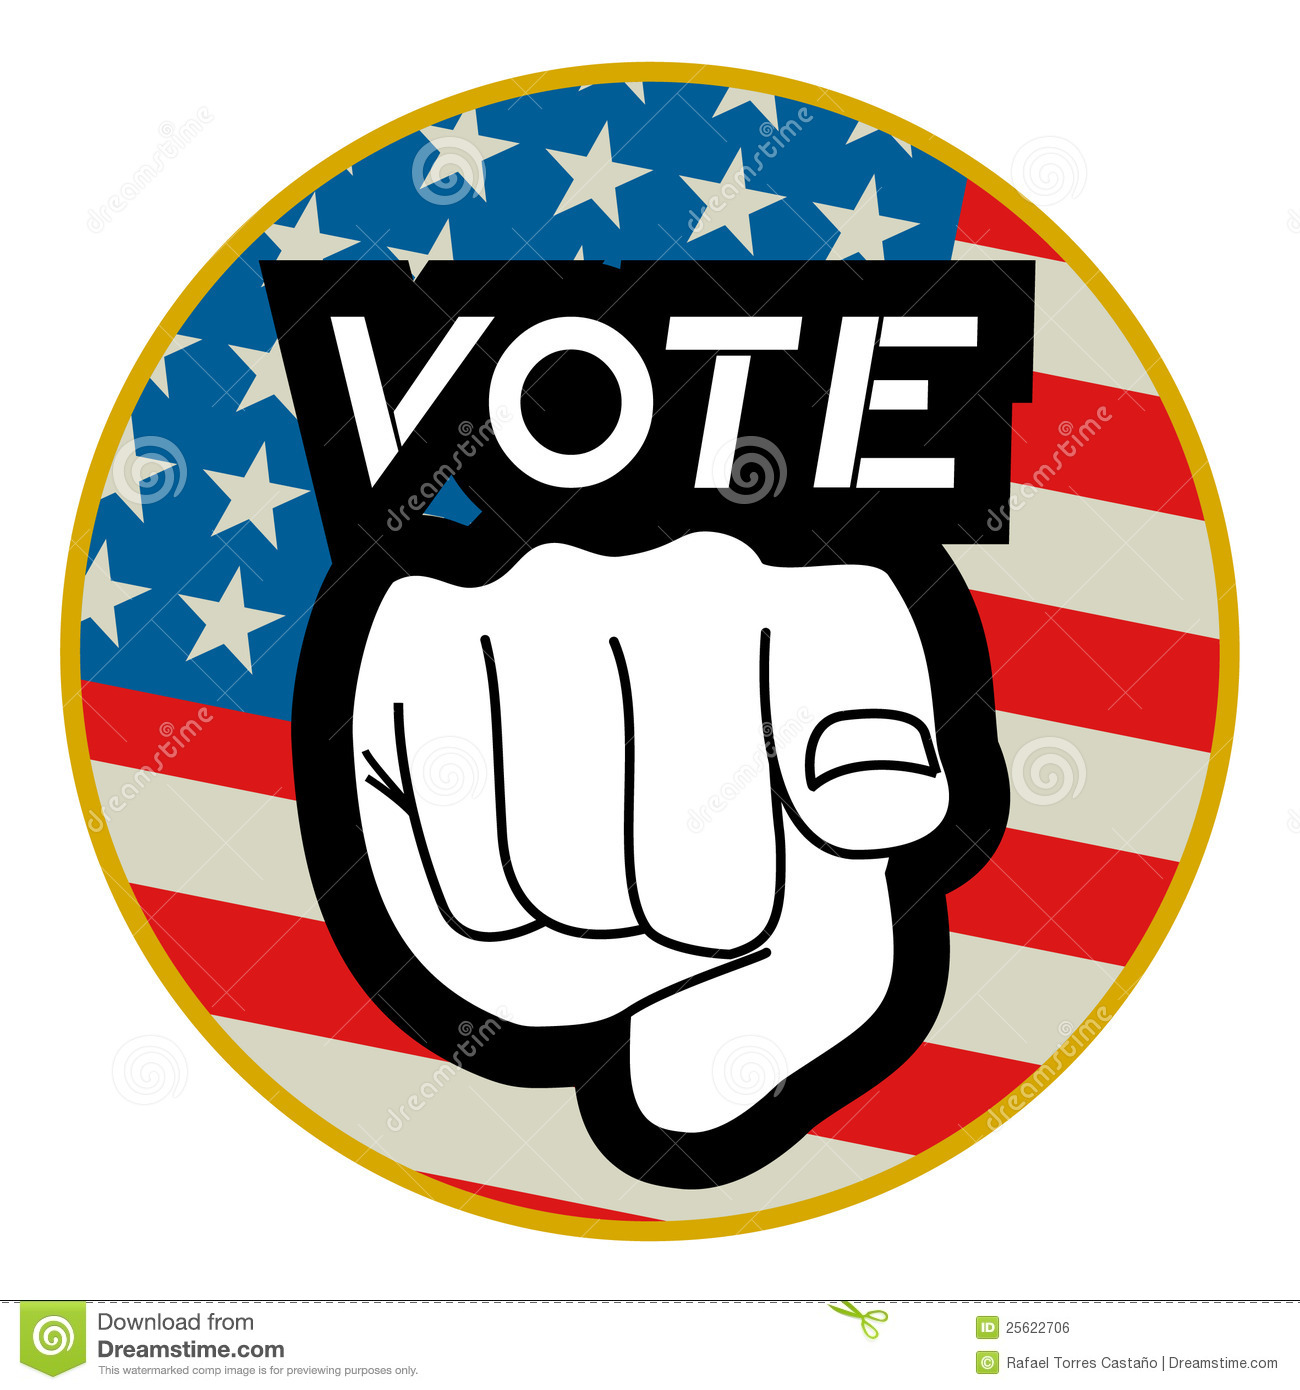 vote circle icon royalty free stock image image 25622706 tick clip art tick prevention tick clip art tick prevention